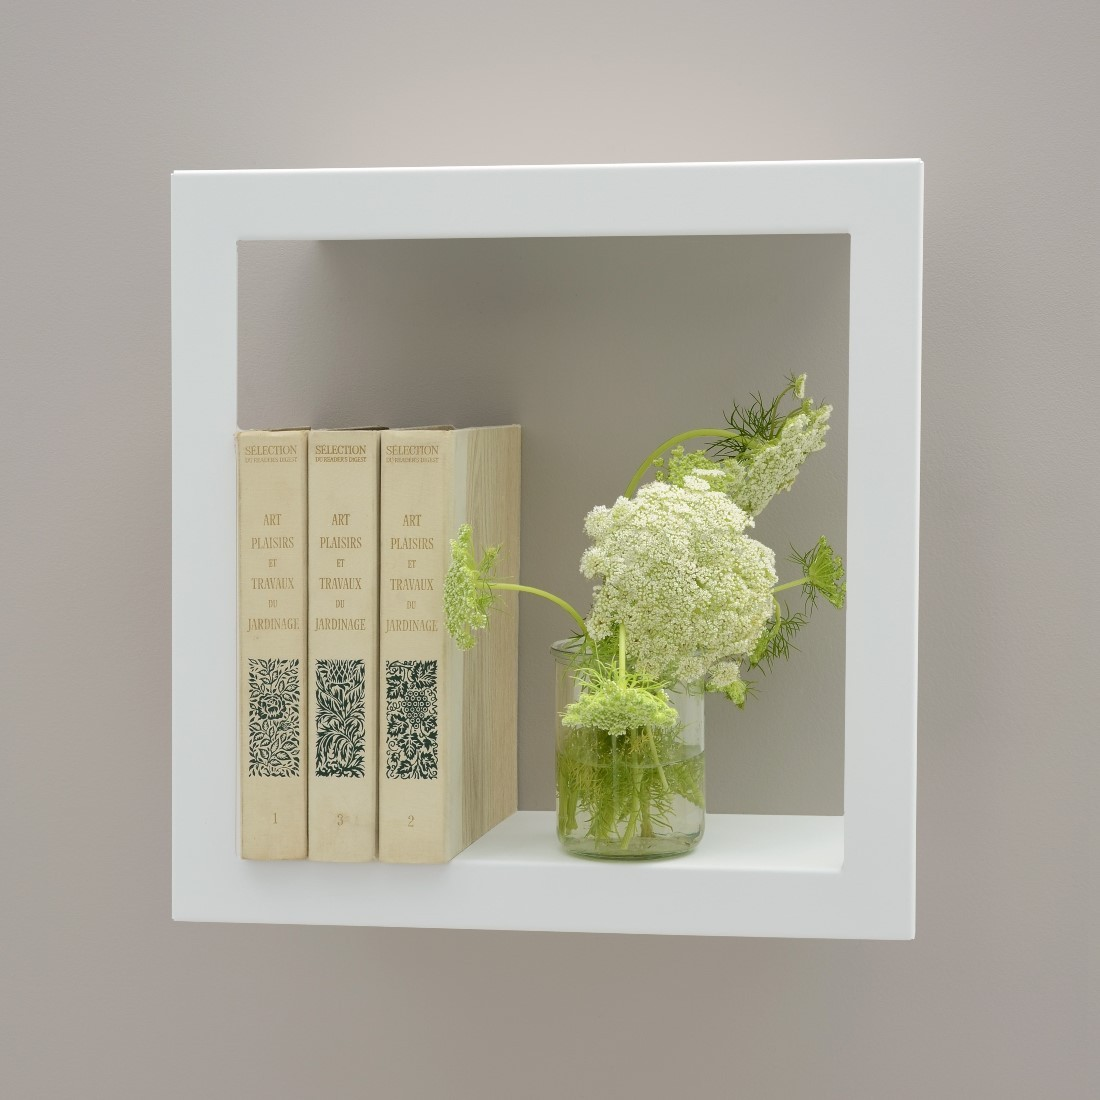 framed wall shelf bigstick presse citron design is this. Black Bedroom Furniture Sets. Home Design Ideas